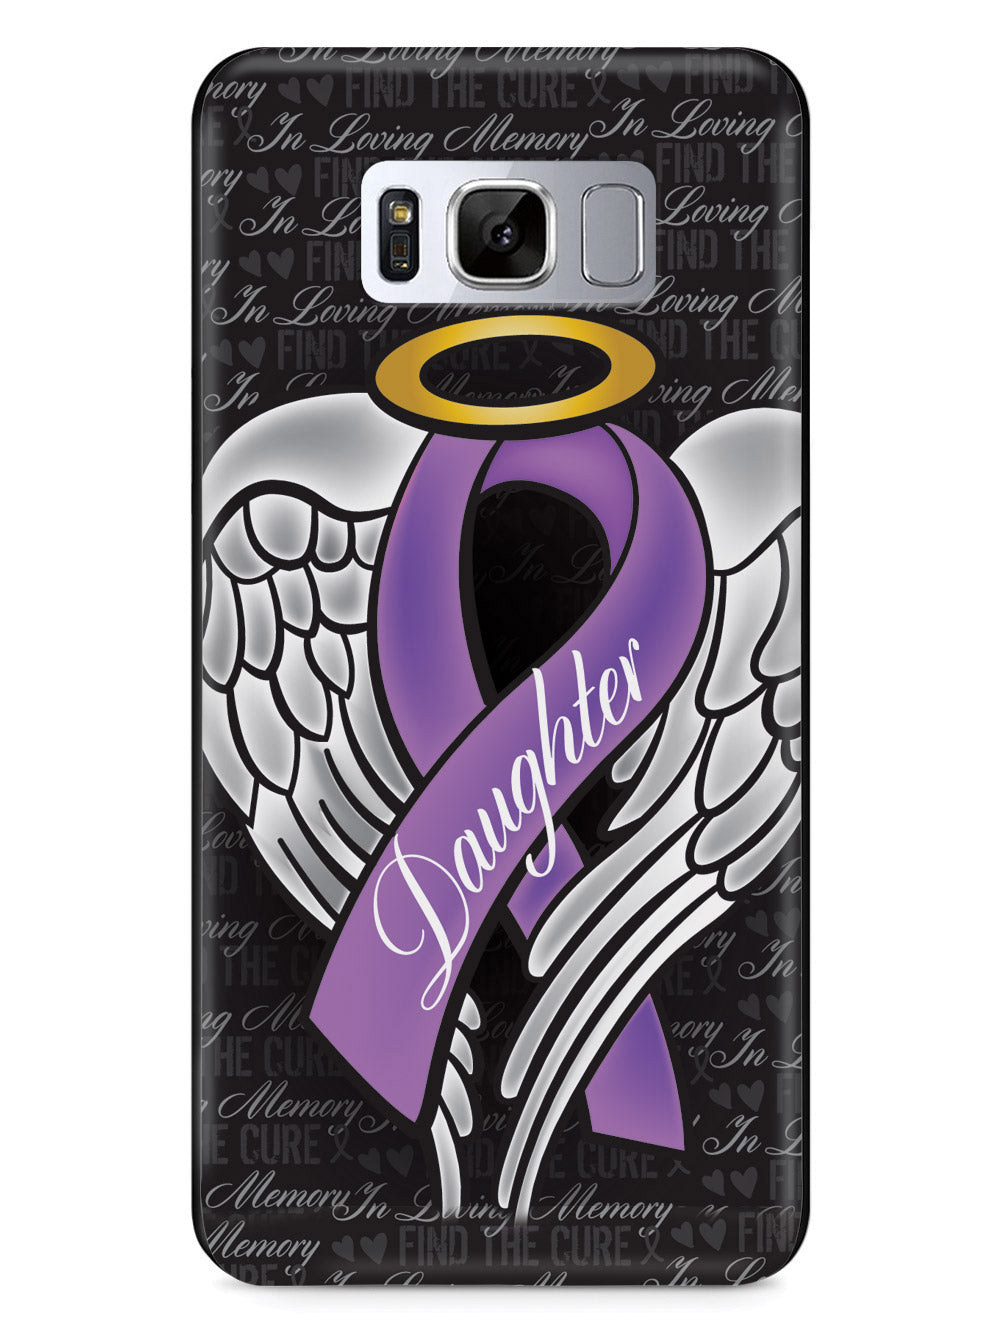 In Loving Memory of My Daughter - Purple Ribbon Case